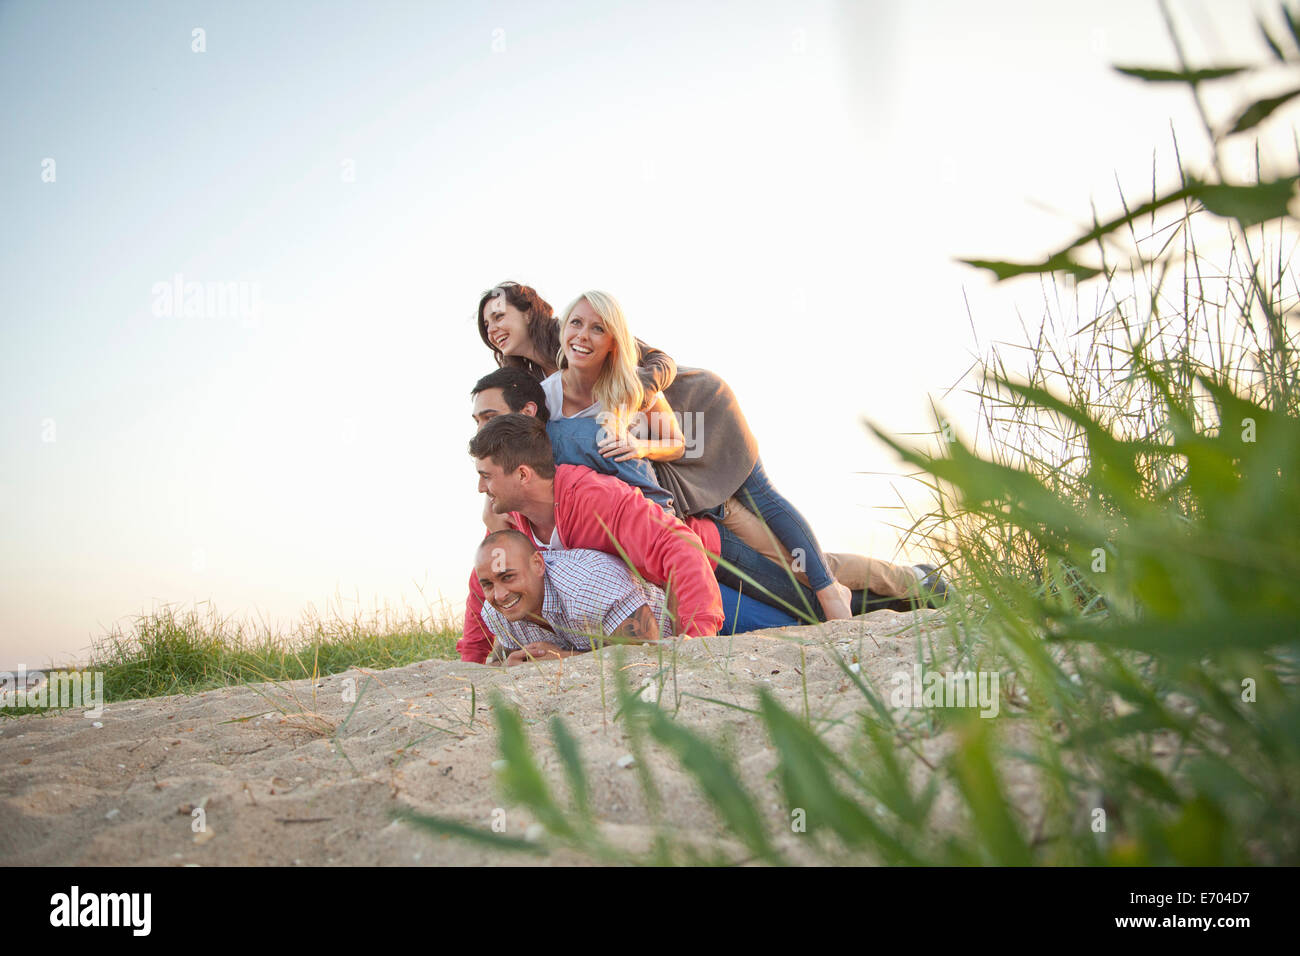 Group of friends making human pile on beach - Stock Image